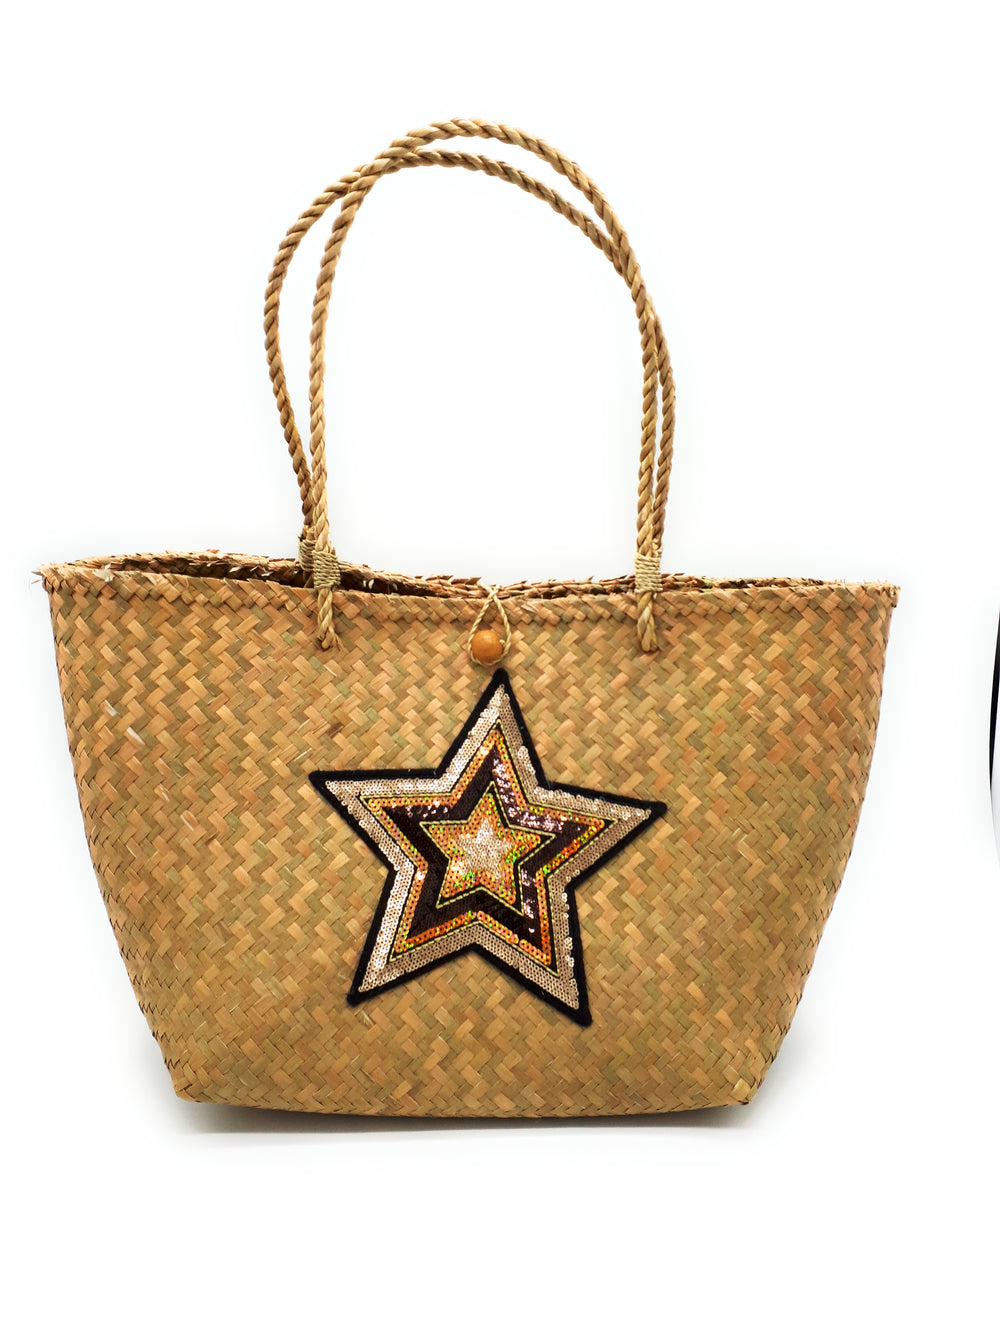 Medium star beach bag - BA-S-F-A